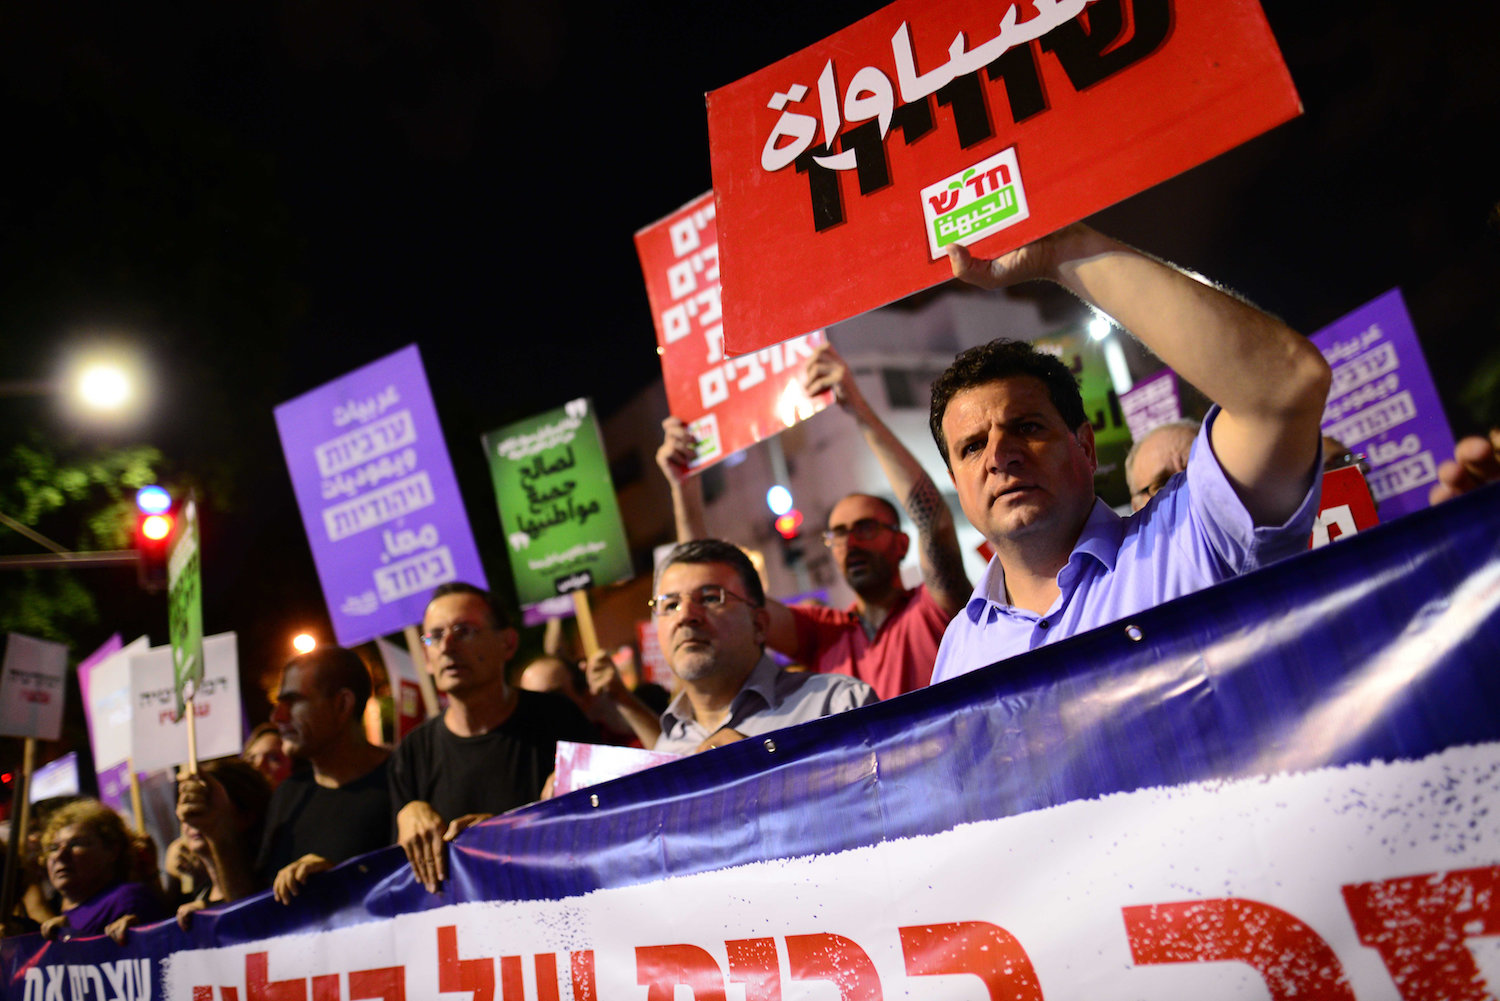 Joint List head Ayman Odeh (right), MK Yousef Jabareen (center), and former MK Dov Khenin (left) take part at a protest march against Jewish Nation-State Law, Tel Aviv, July 14, 2018. (Tomer Neuberg/Flash90)